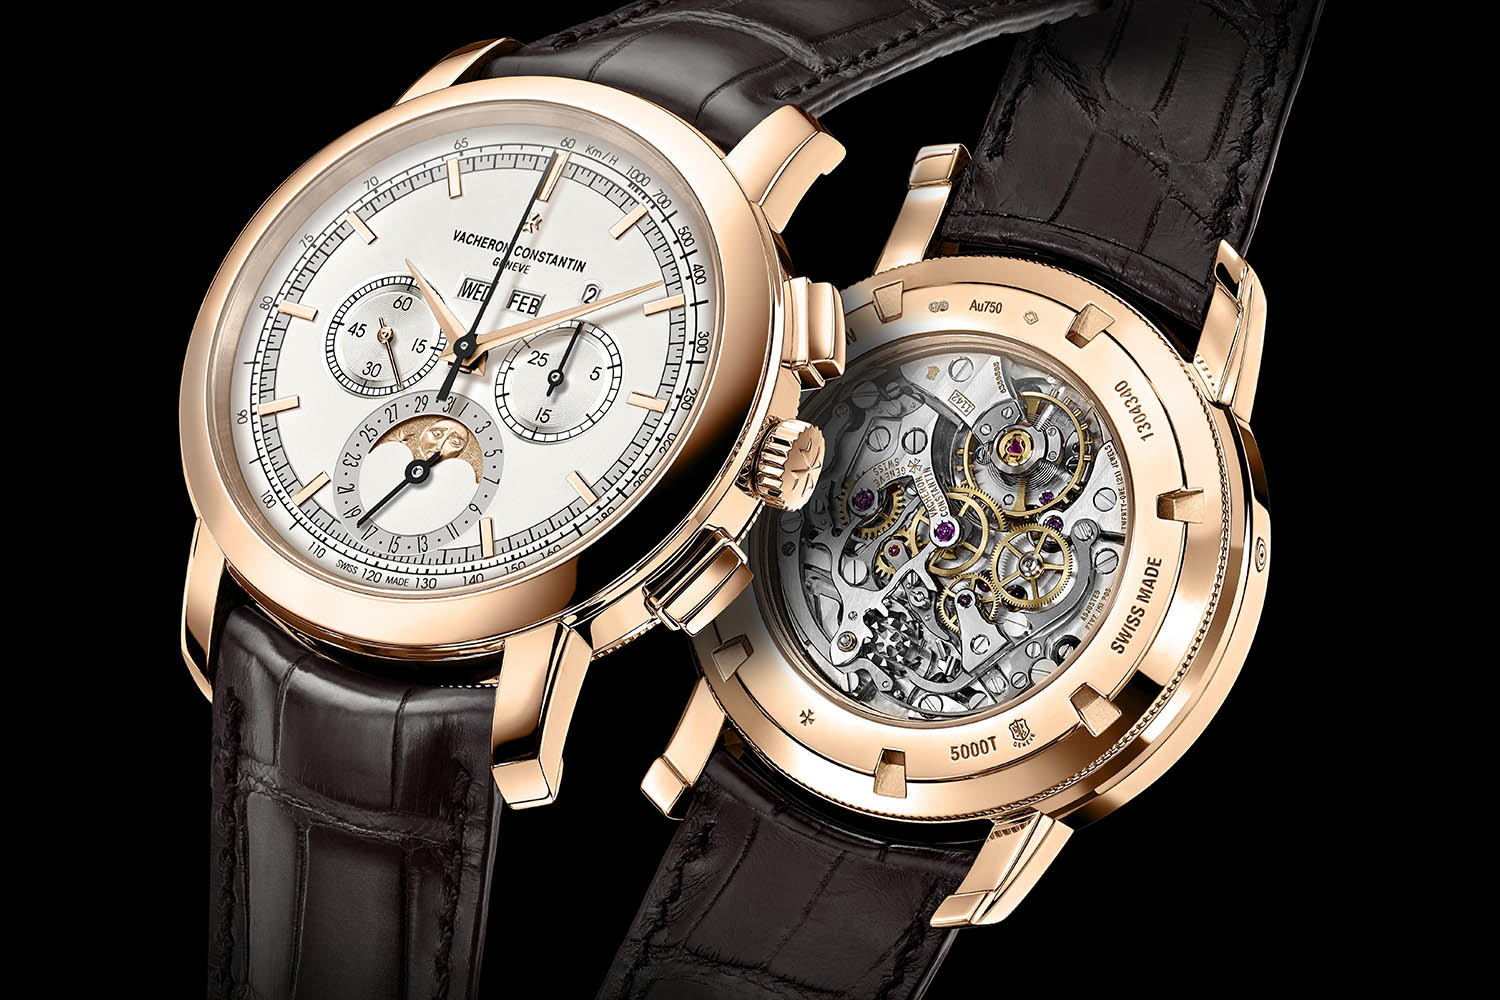 Vacheron Constantin Traditionnelle Chronograph Perpetual Calendar now in Rose Gold - SIHH 2017